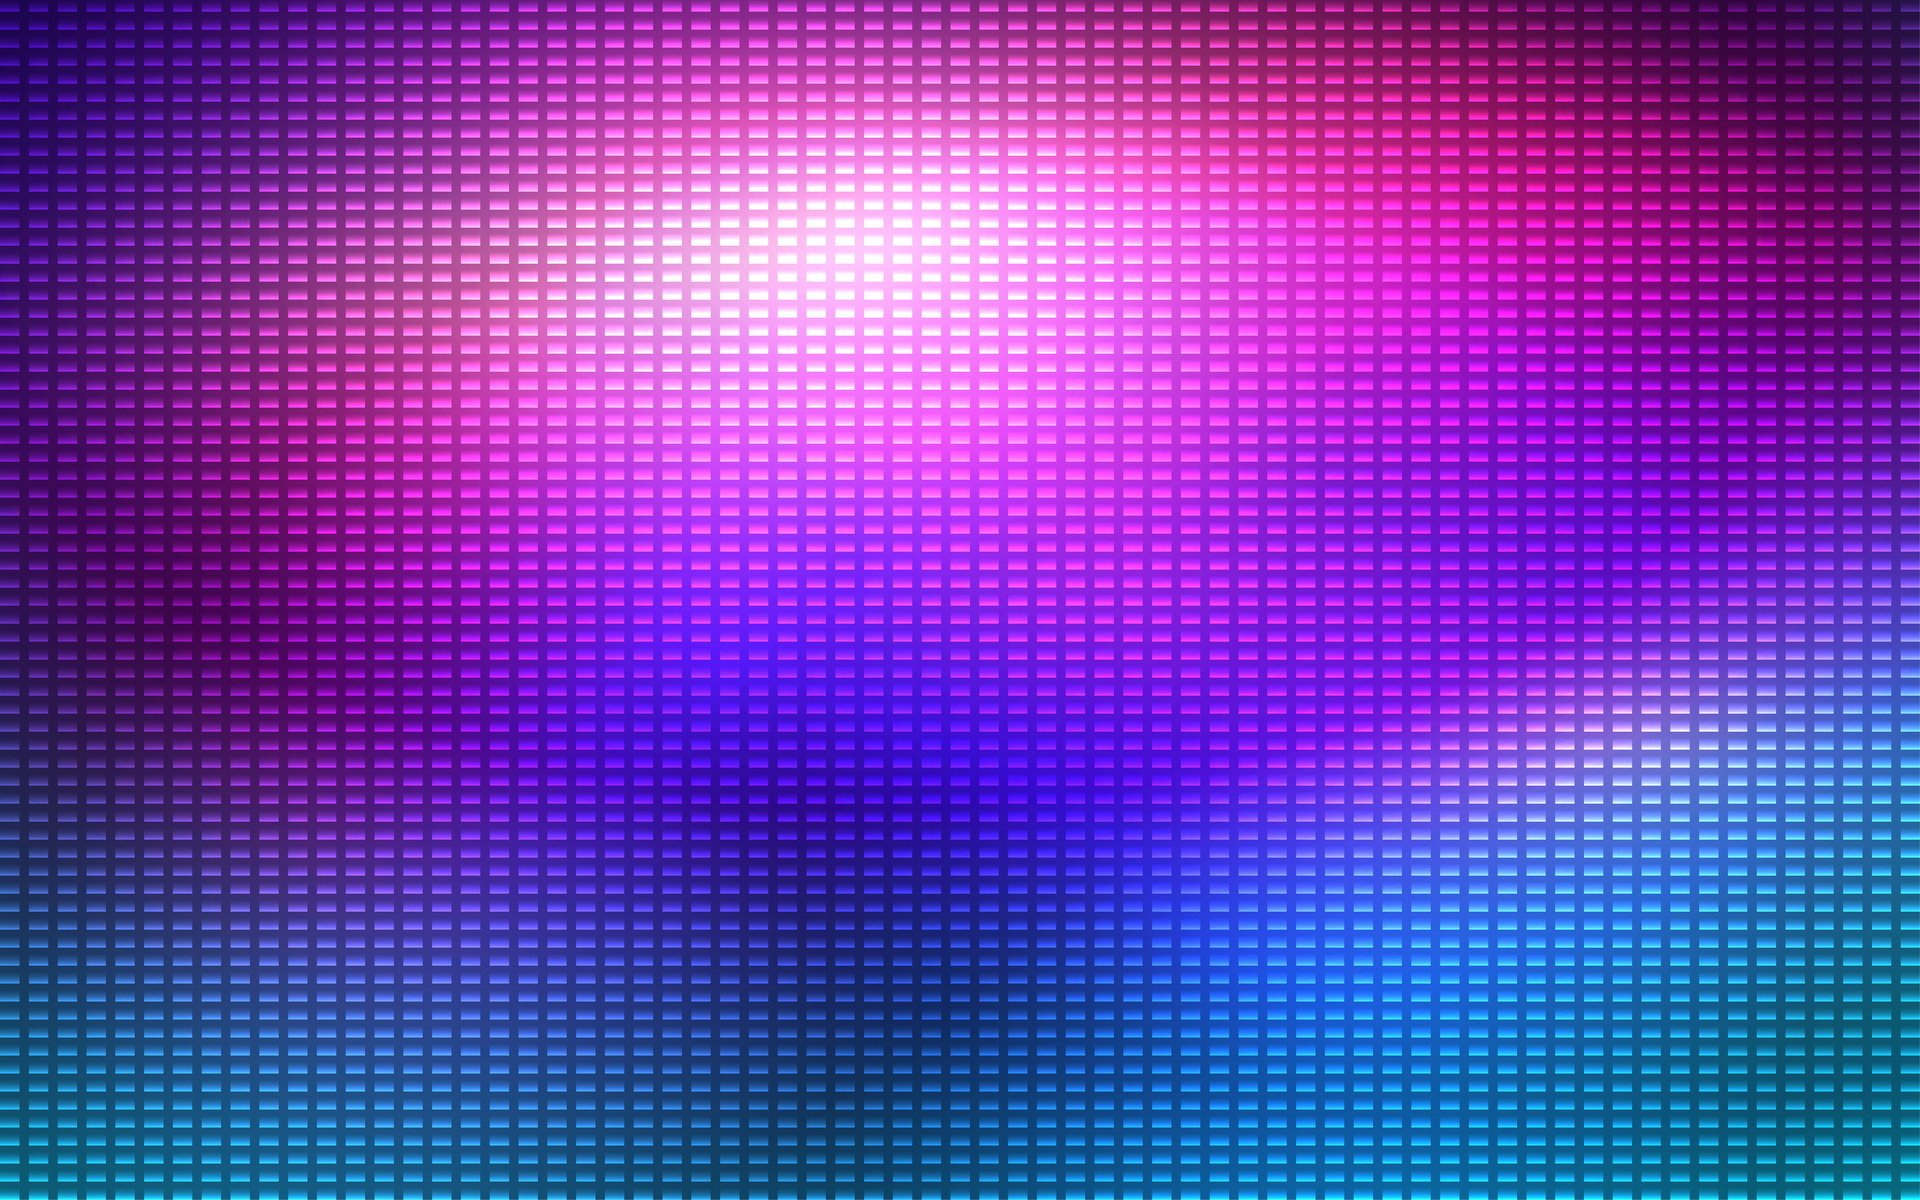 Purple And Turquoise Wallpaper: Purple Turquoise Full HD Wallpaper And Background Image